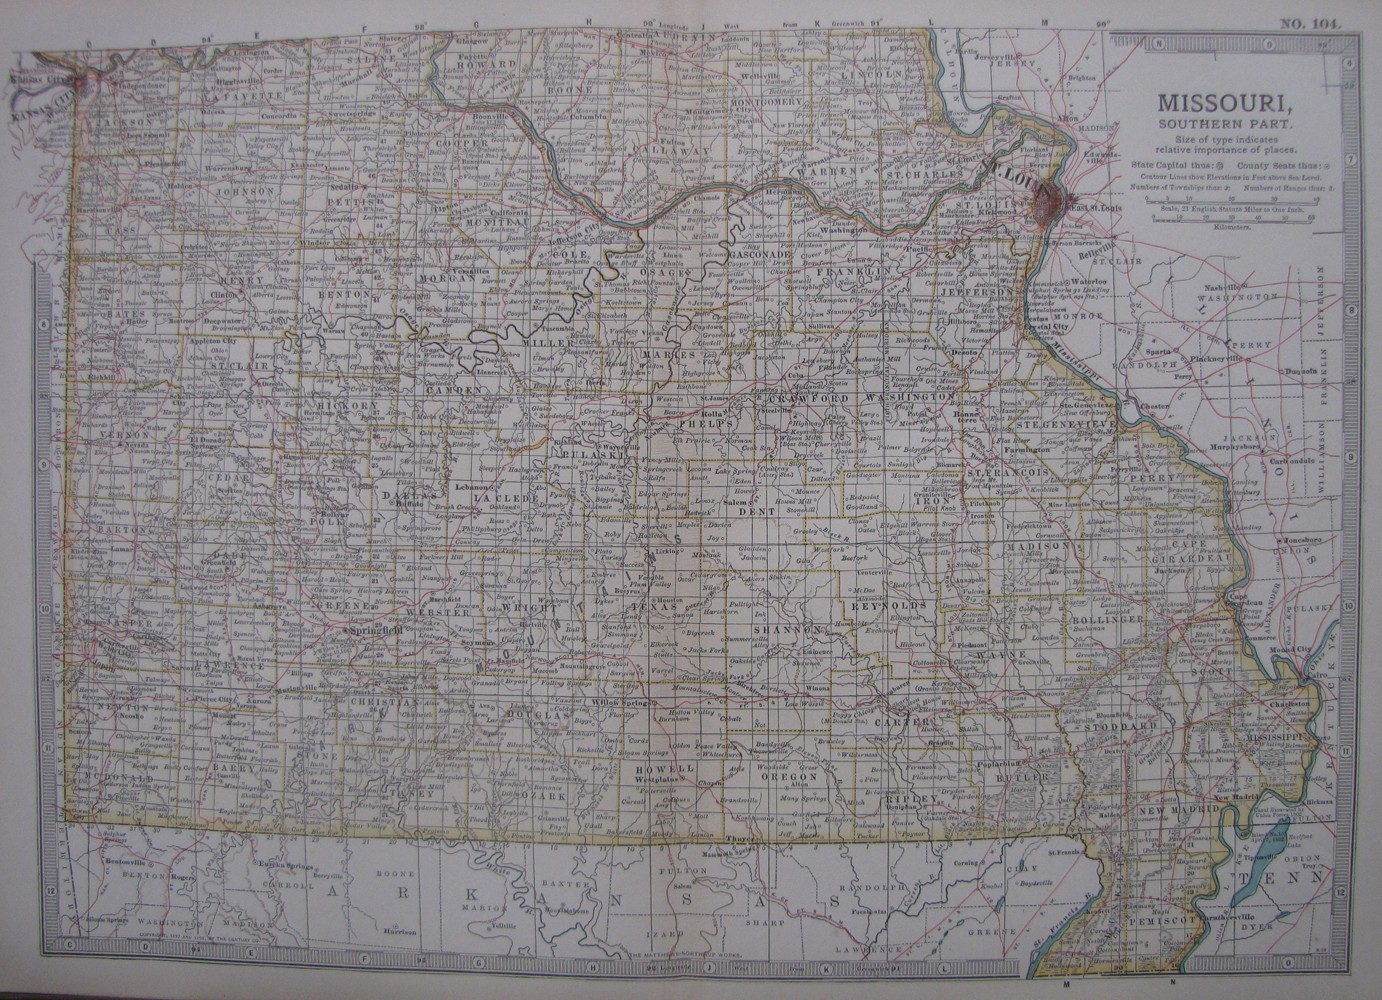 antique map of Missouri, Southern Part, No.104